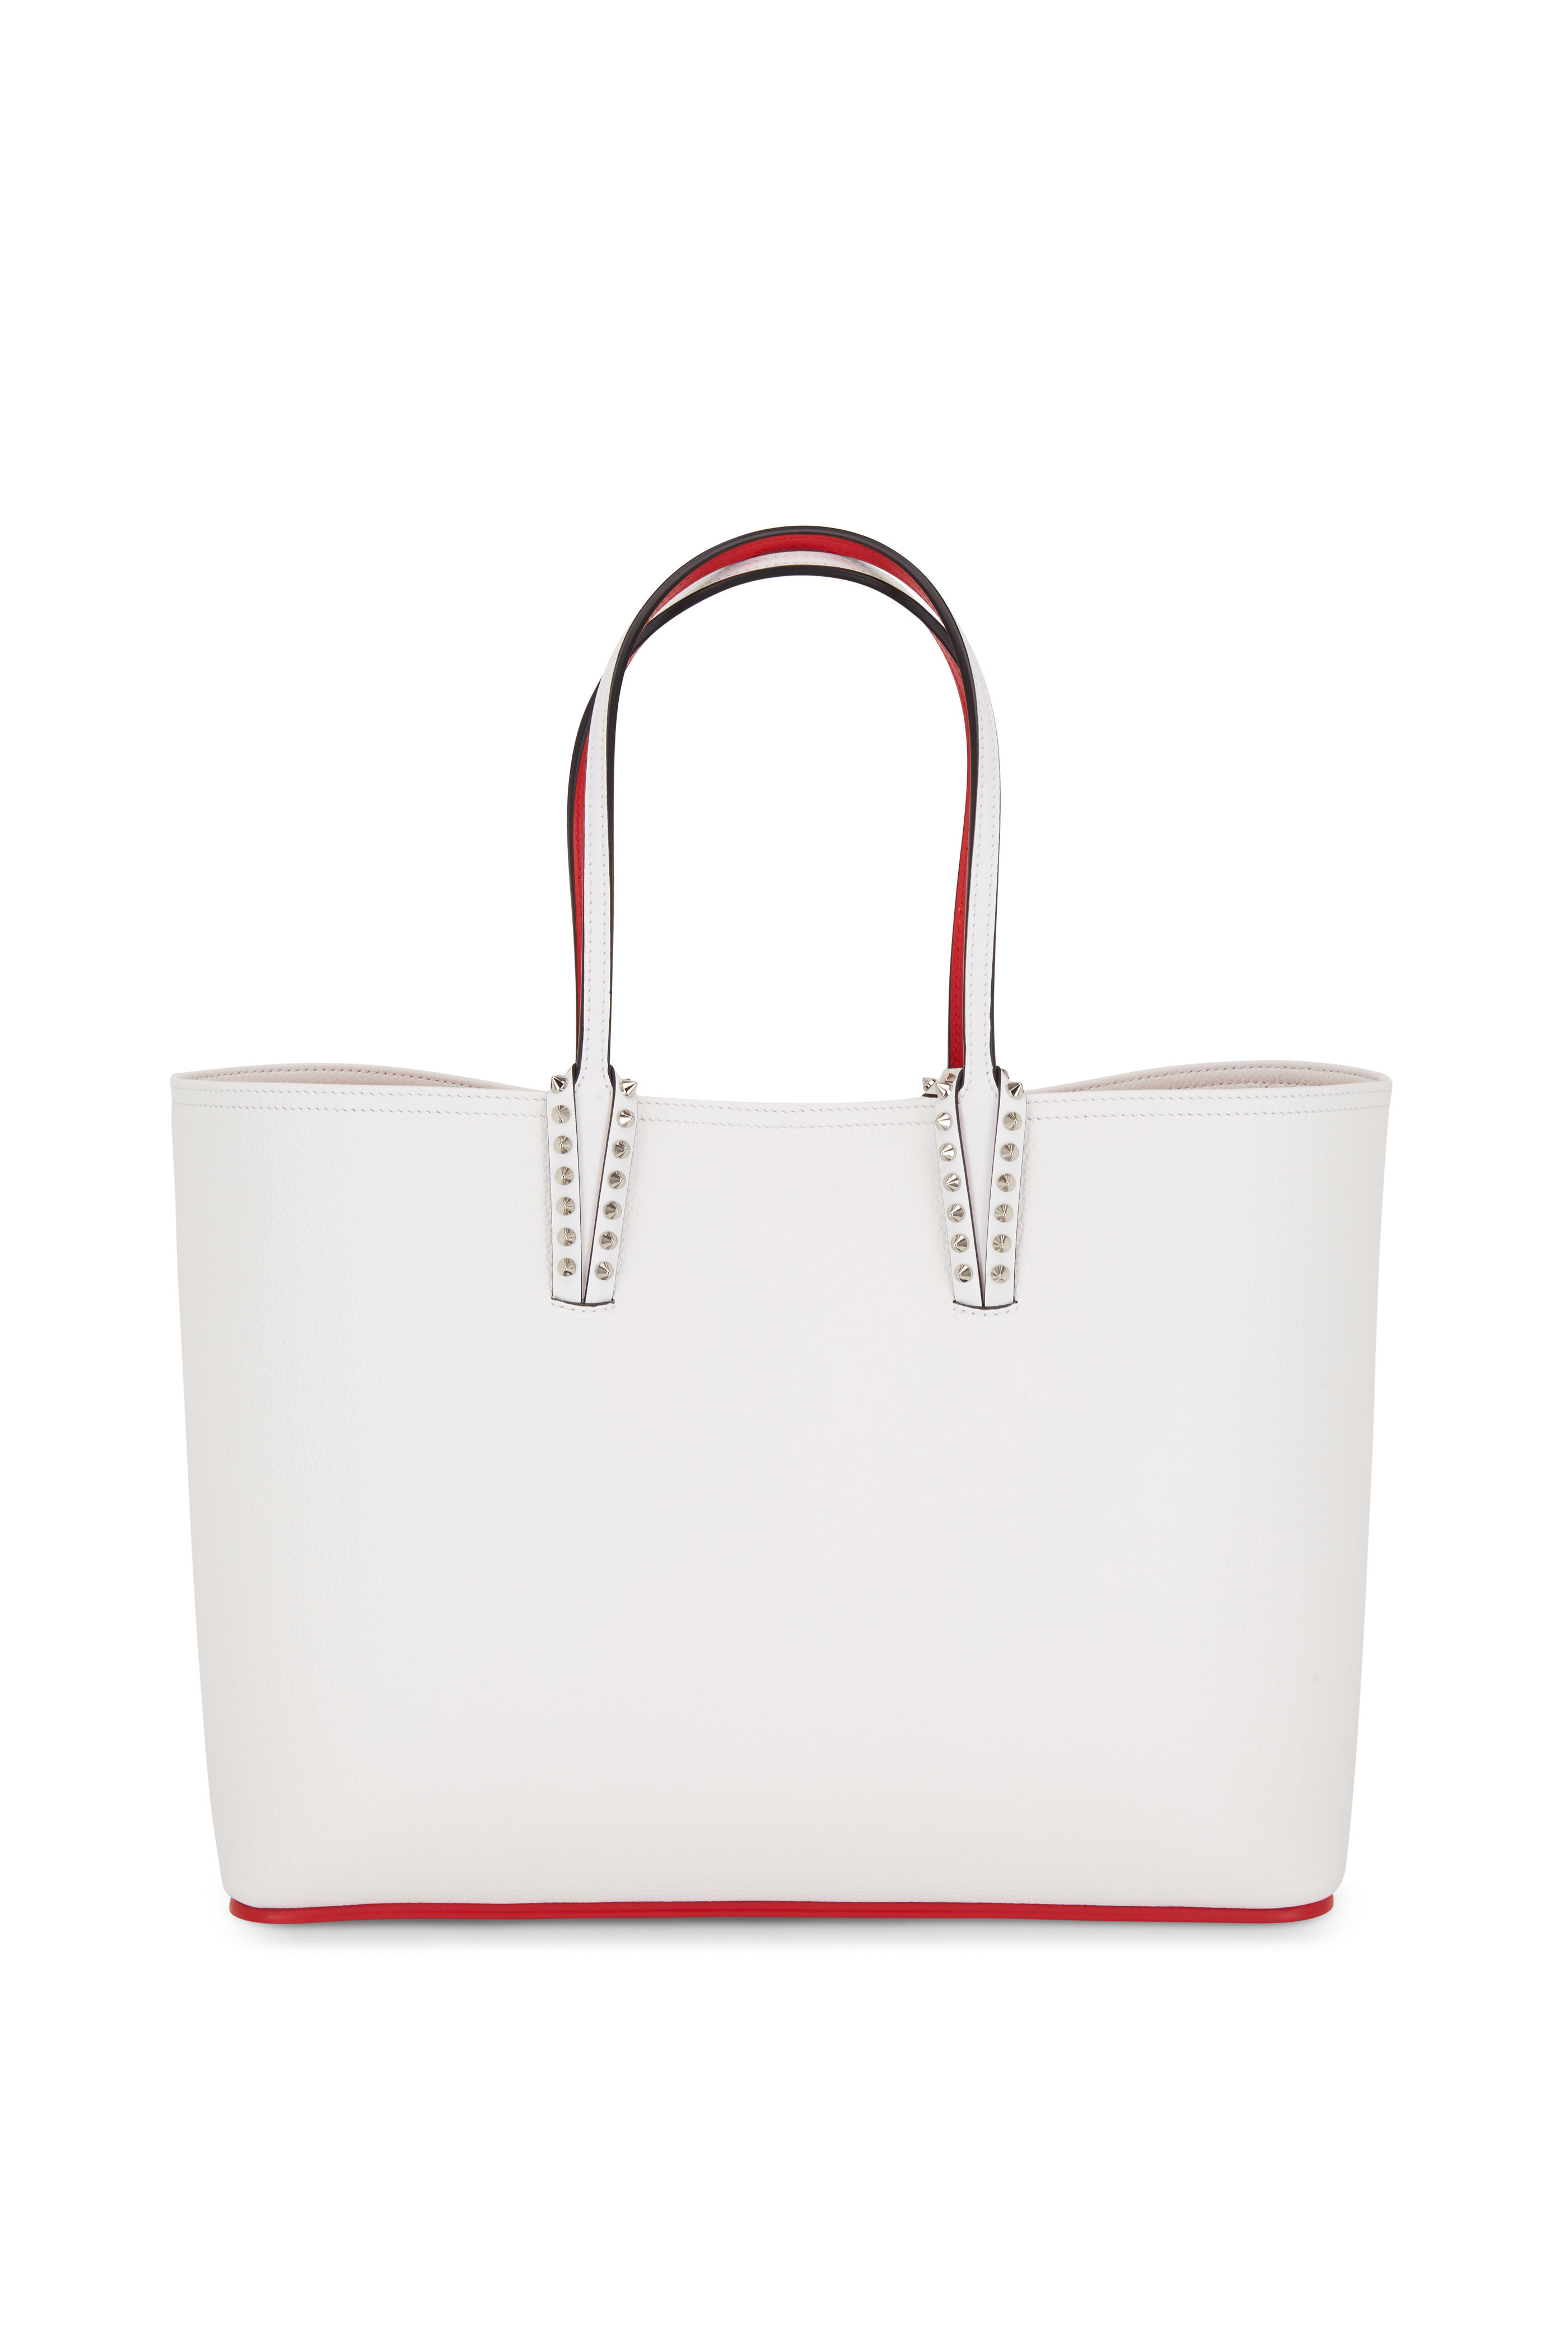 25eb7ed1238d Christian Louboutin - Cabata Snow White Leather Tote